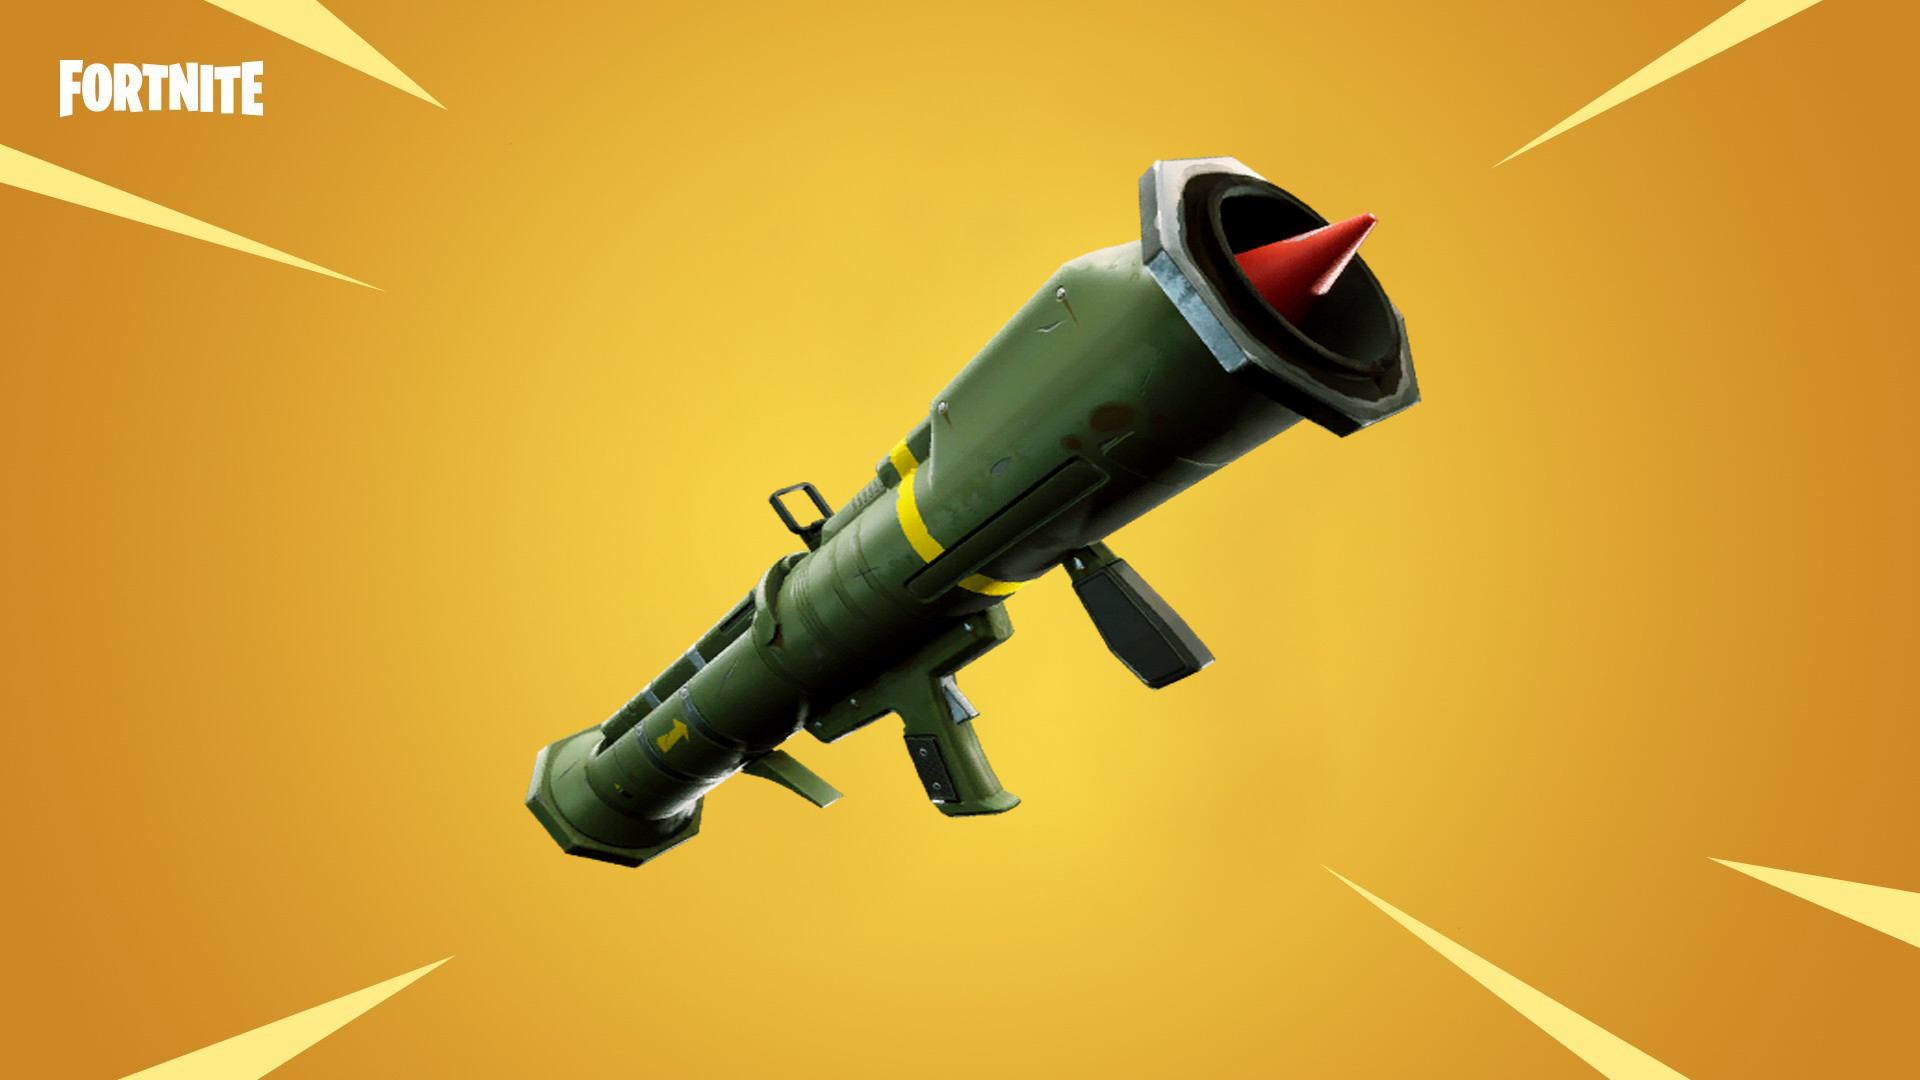 Guided Missile Legendary | Fortnite - zilliongamer